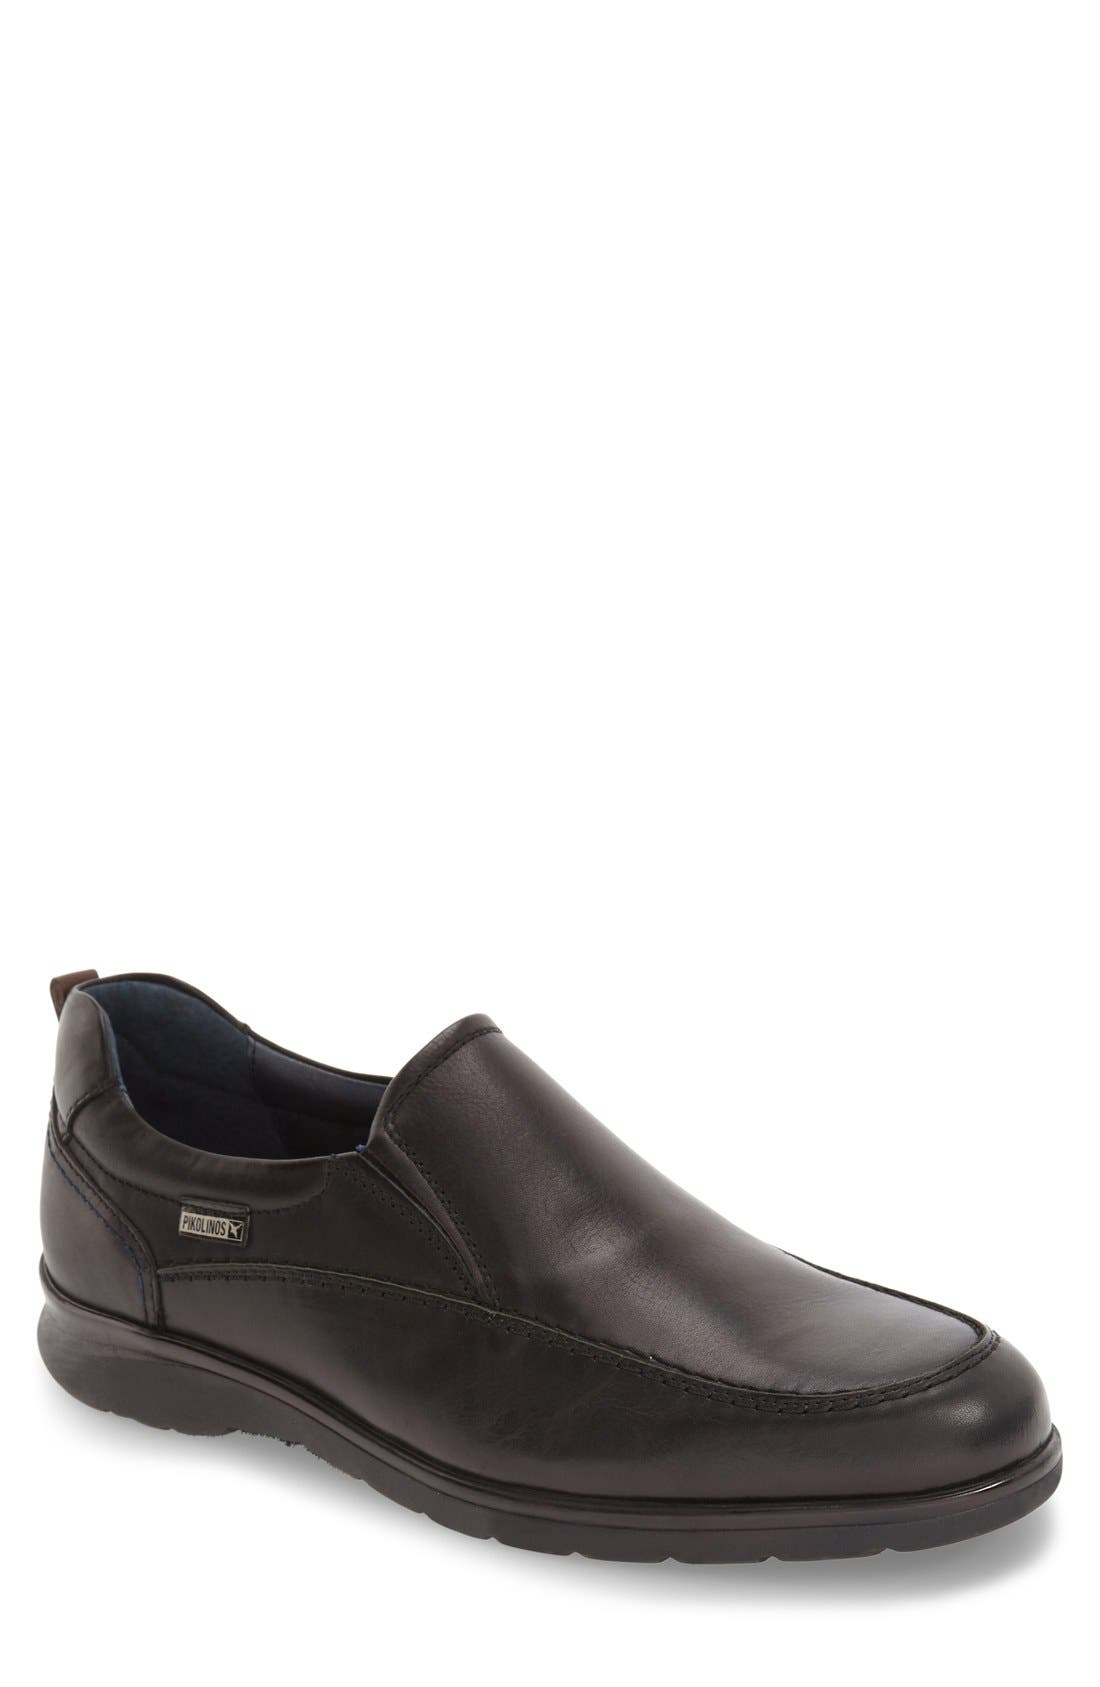 'San Lorenzo' Slip-On,                         Main,                         color, Black Leather